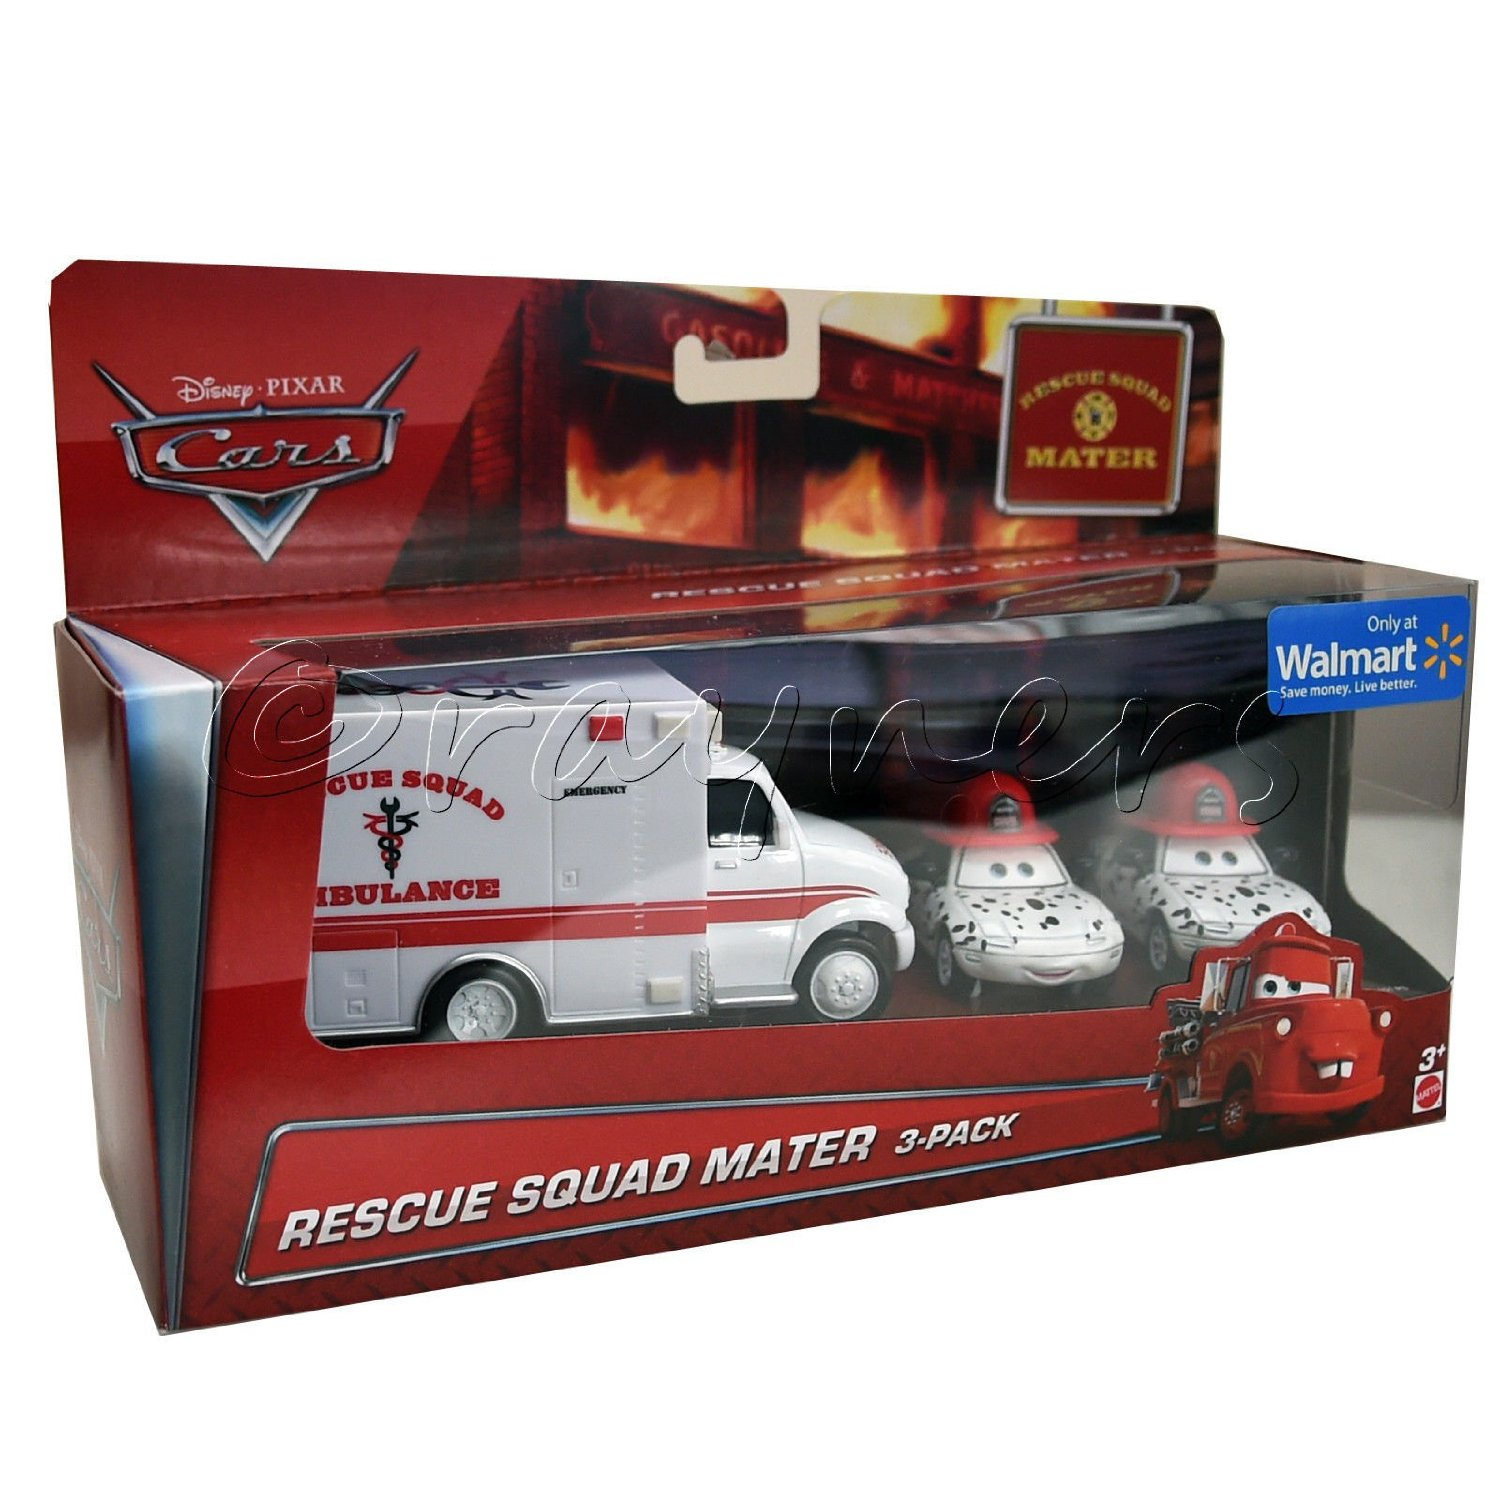 Disney/Pixar Cars, Toon Exclusive Die-Cast Vehicles, Rescue Squad Mater 3-Pack [Rescue Squad Ambulance, Dalmation Mia, and Dalmation Tia], 1:55 Scale